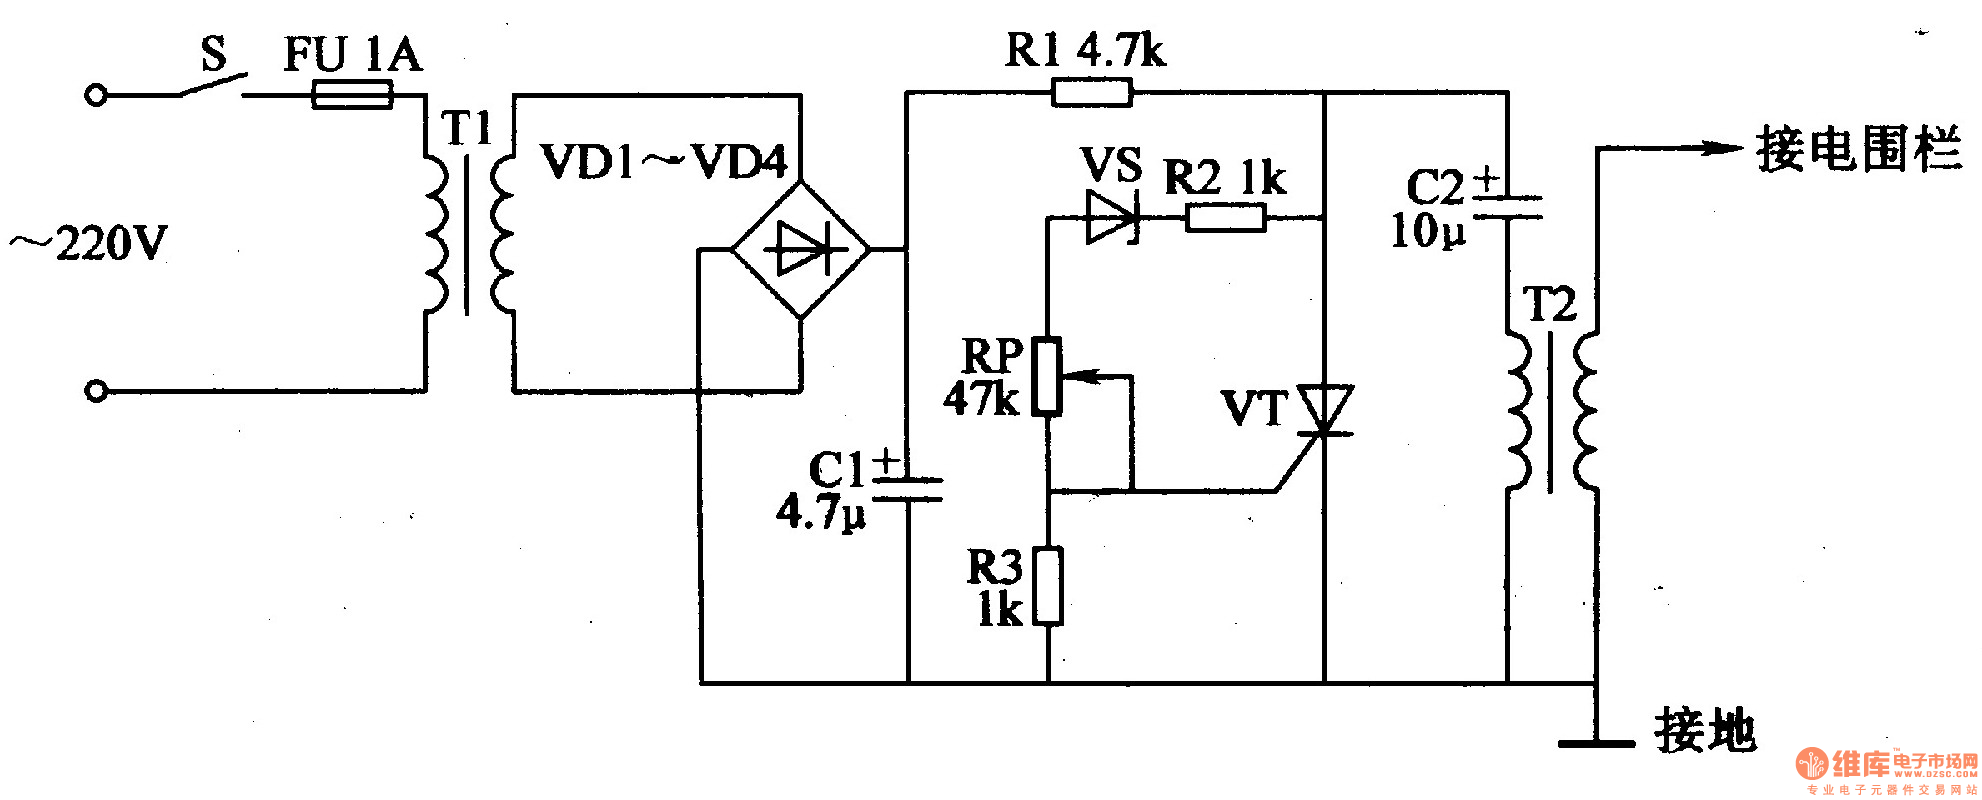 electric fence control circuit 7 - control circuit - circuit diagram